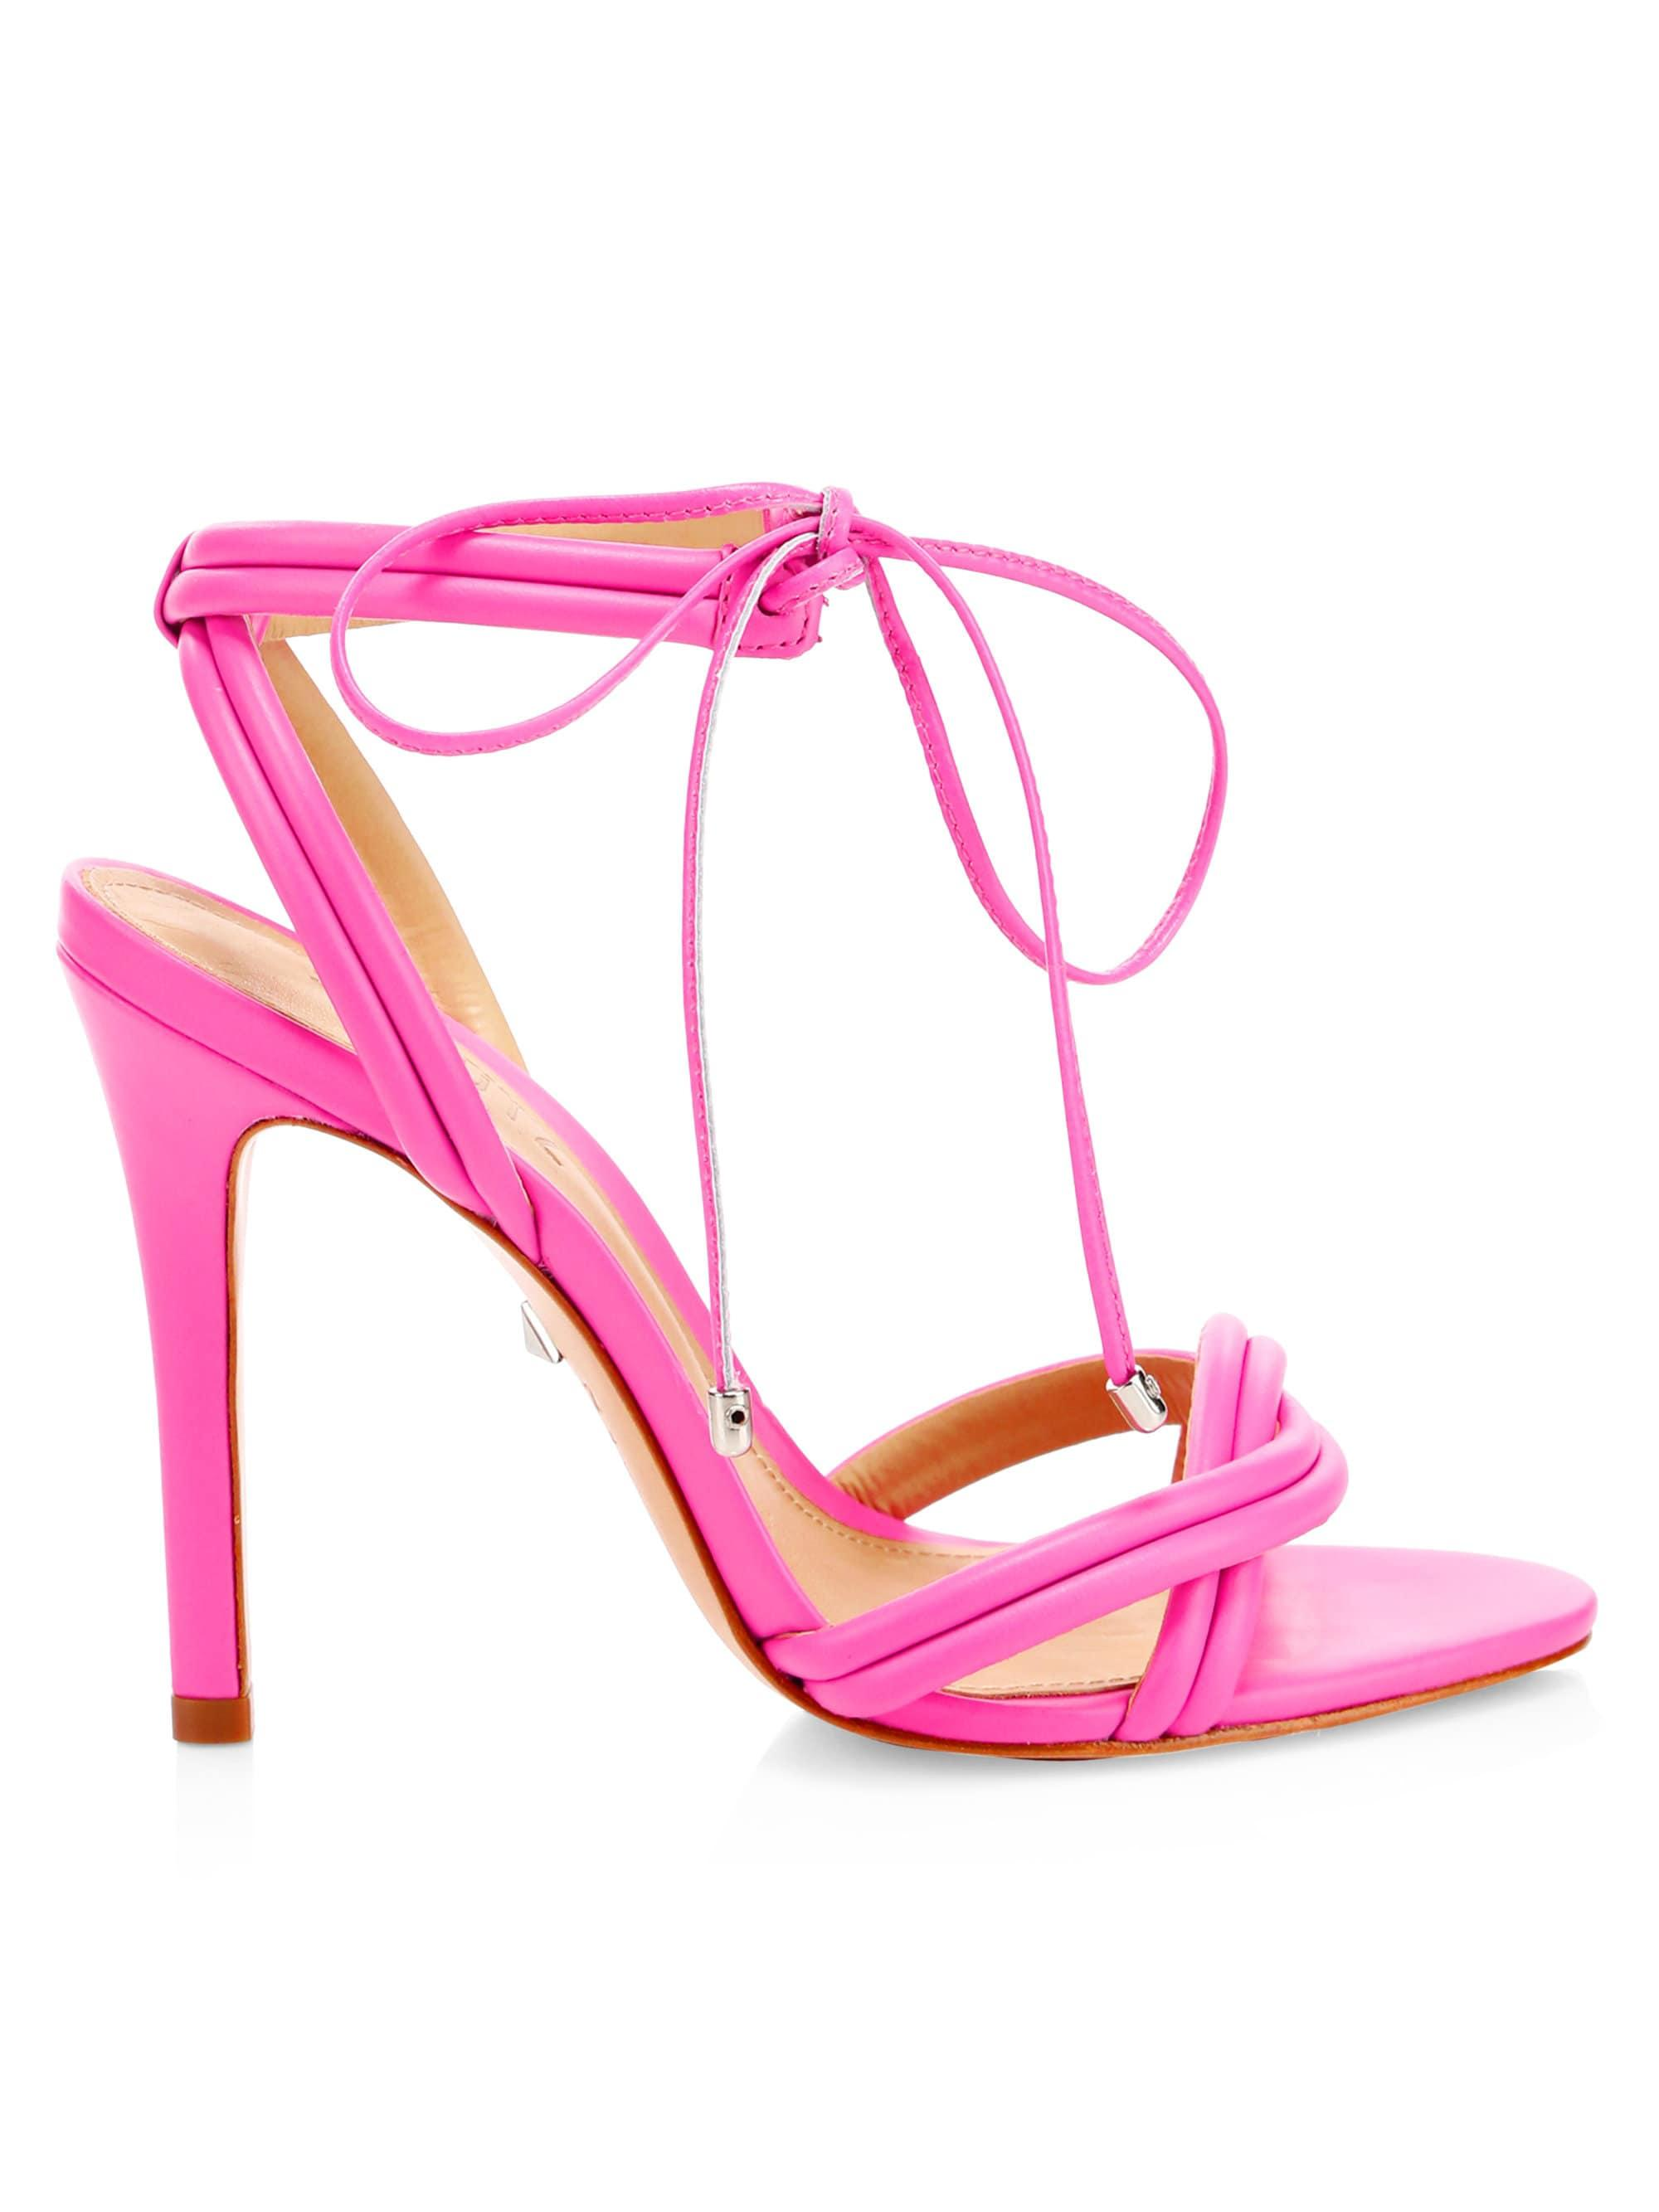 31eb8e0d9700 Lyst - Schutz Yvi Ankle-tie Leather Sandals in Pink